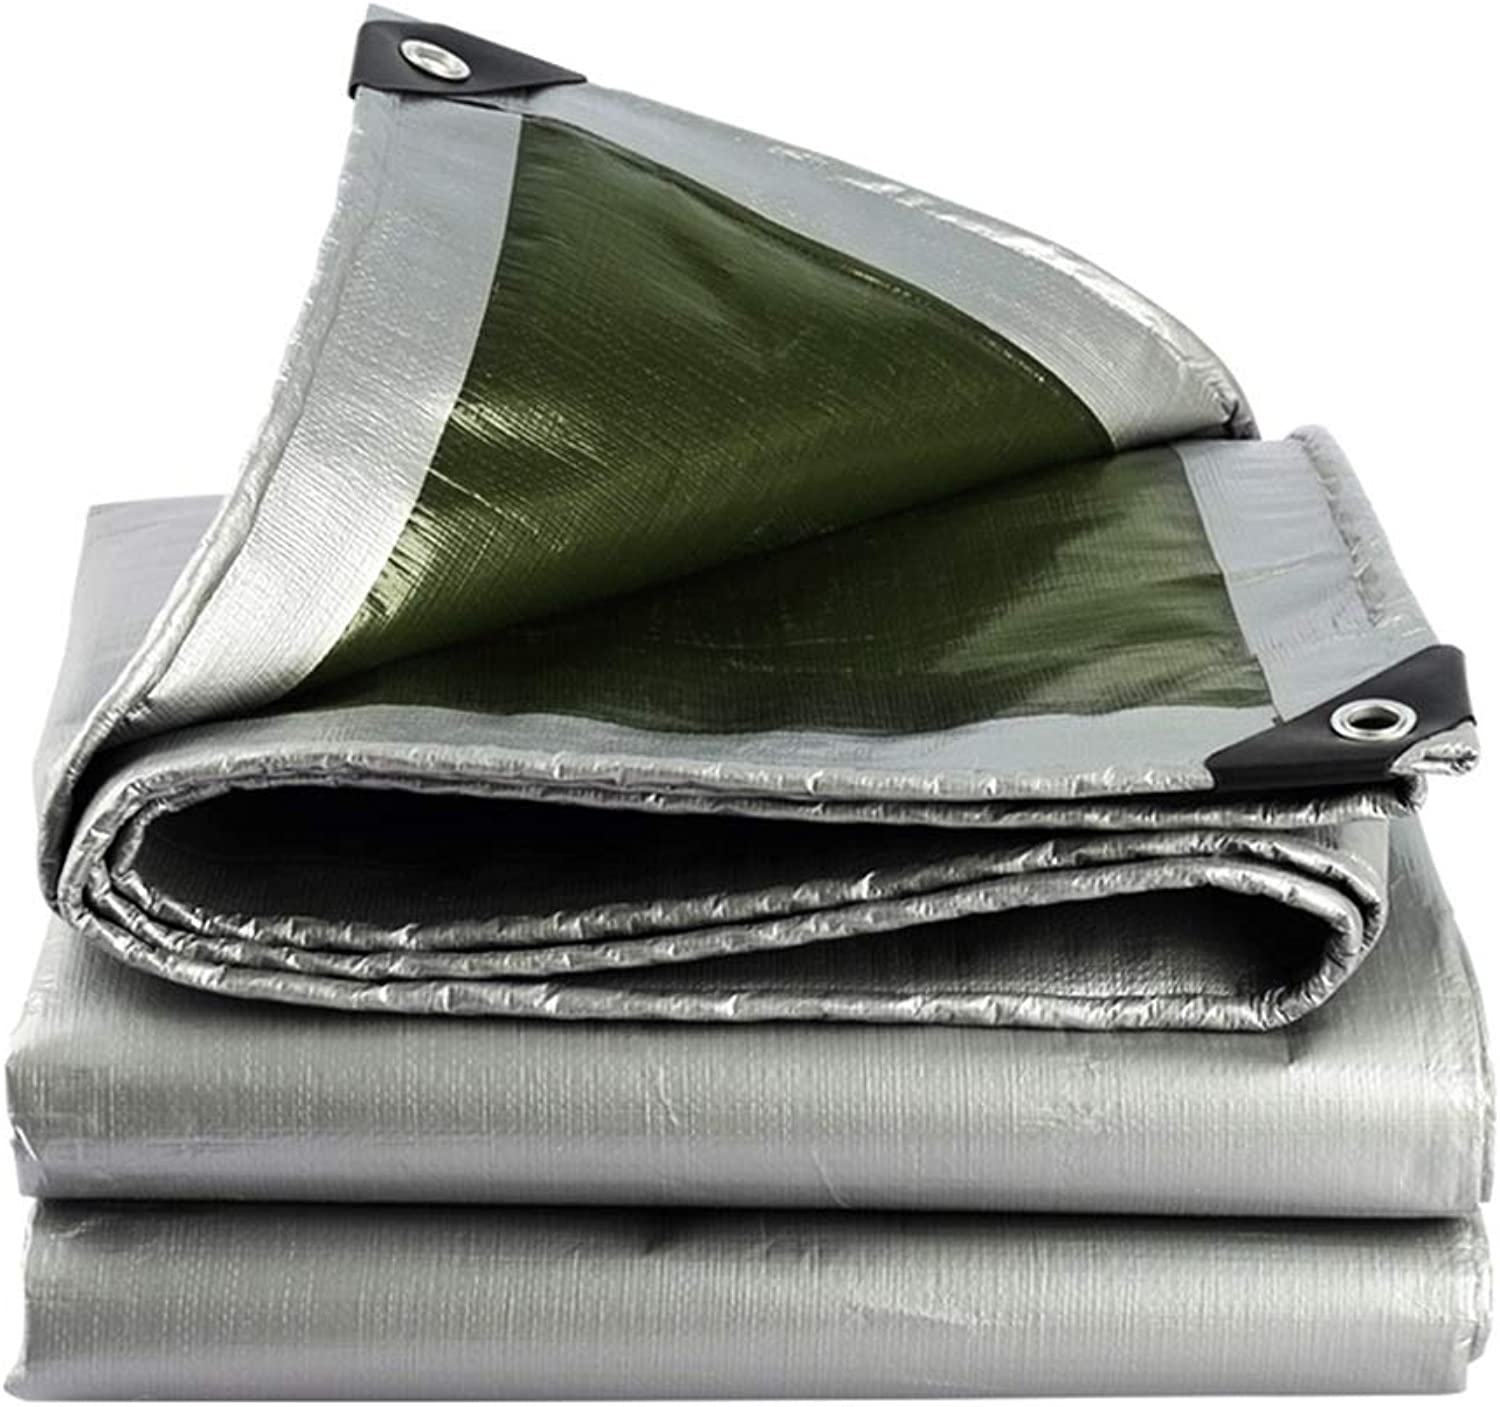 CHAOXIANG Tarpaulin Tent Thicken Foldable Rainproof AntiSun High Temperature Resistance AntiAging WearResistant Lightweight PE Silver, 180g m2, Thickness 0.35mm, 22 Sizes